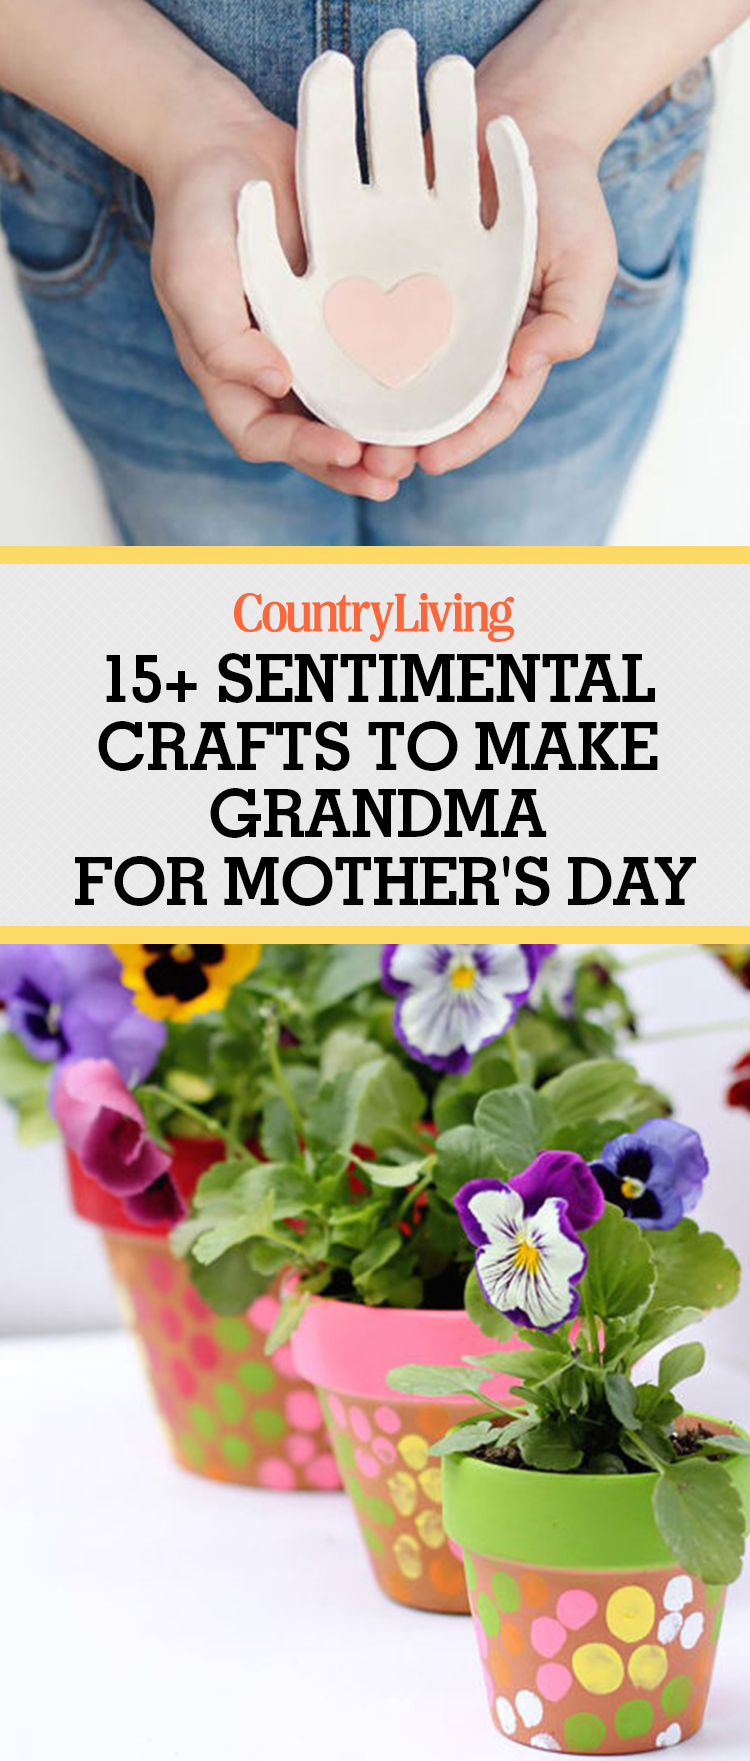 15 Best Mother's Day Gifts for Grandma - Crafts You Can ...